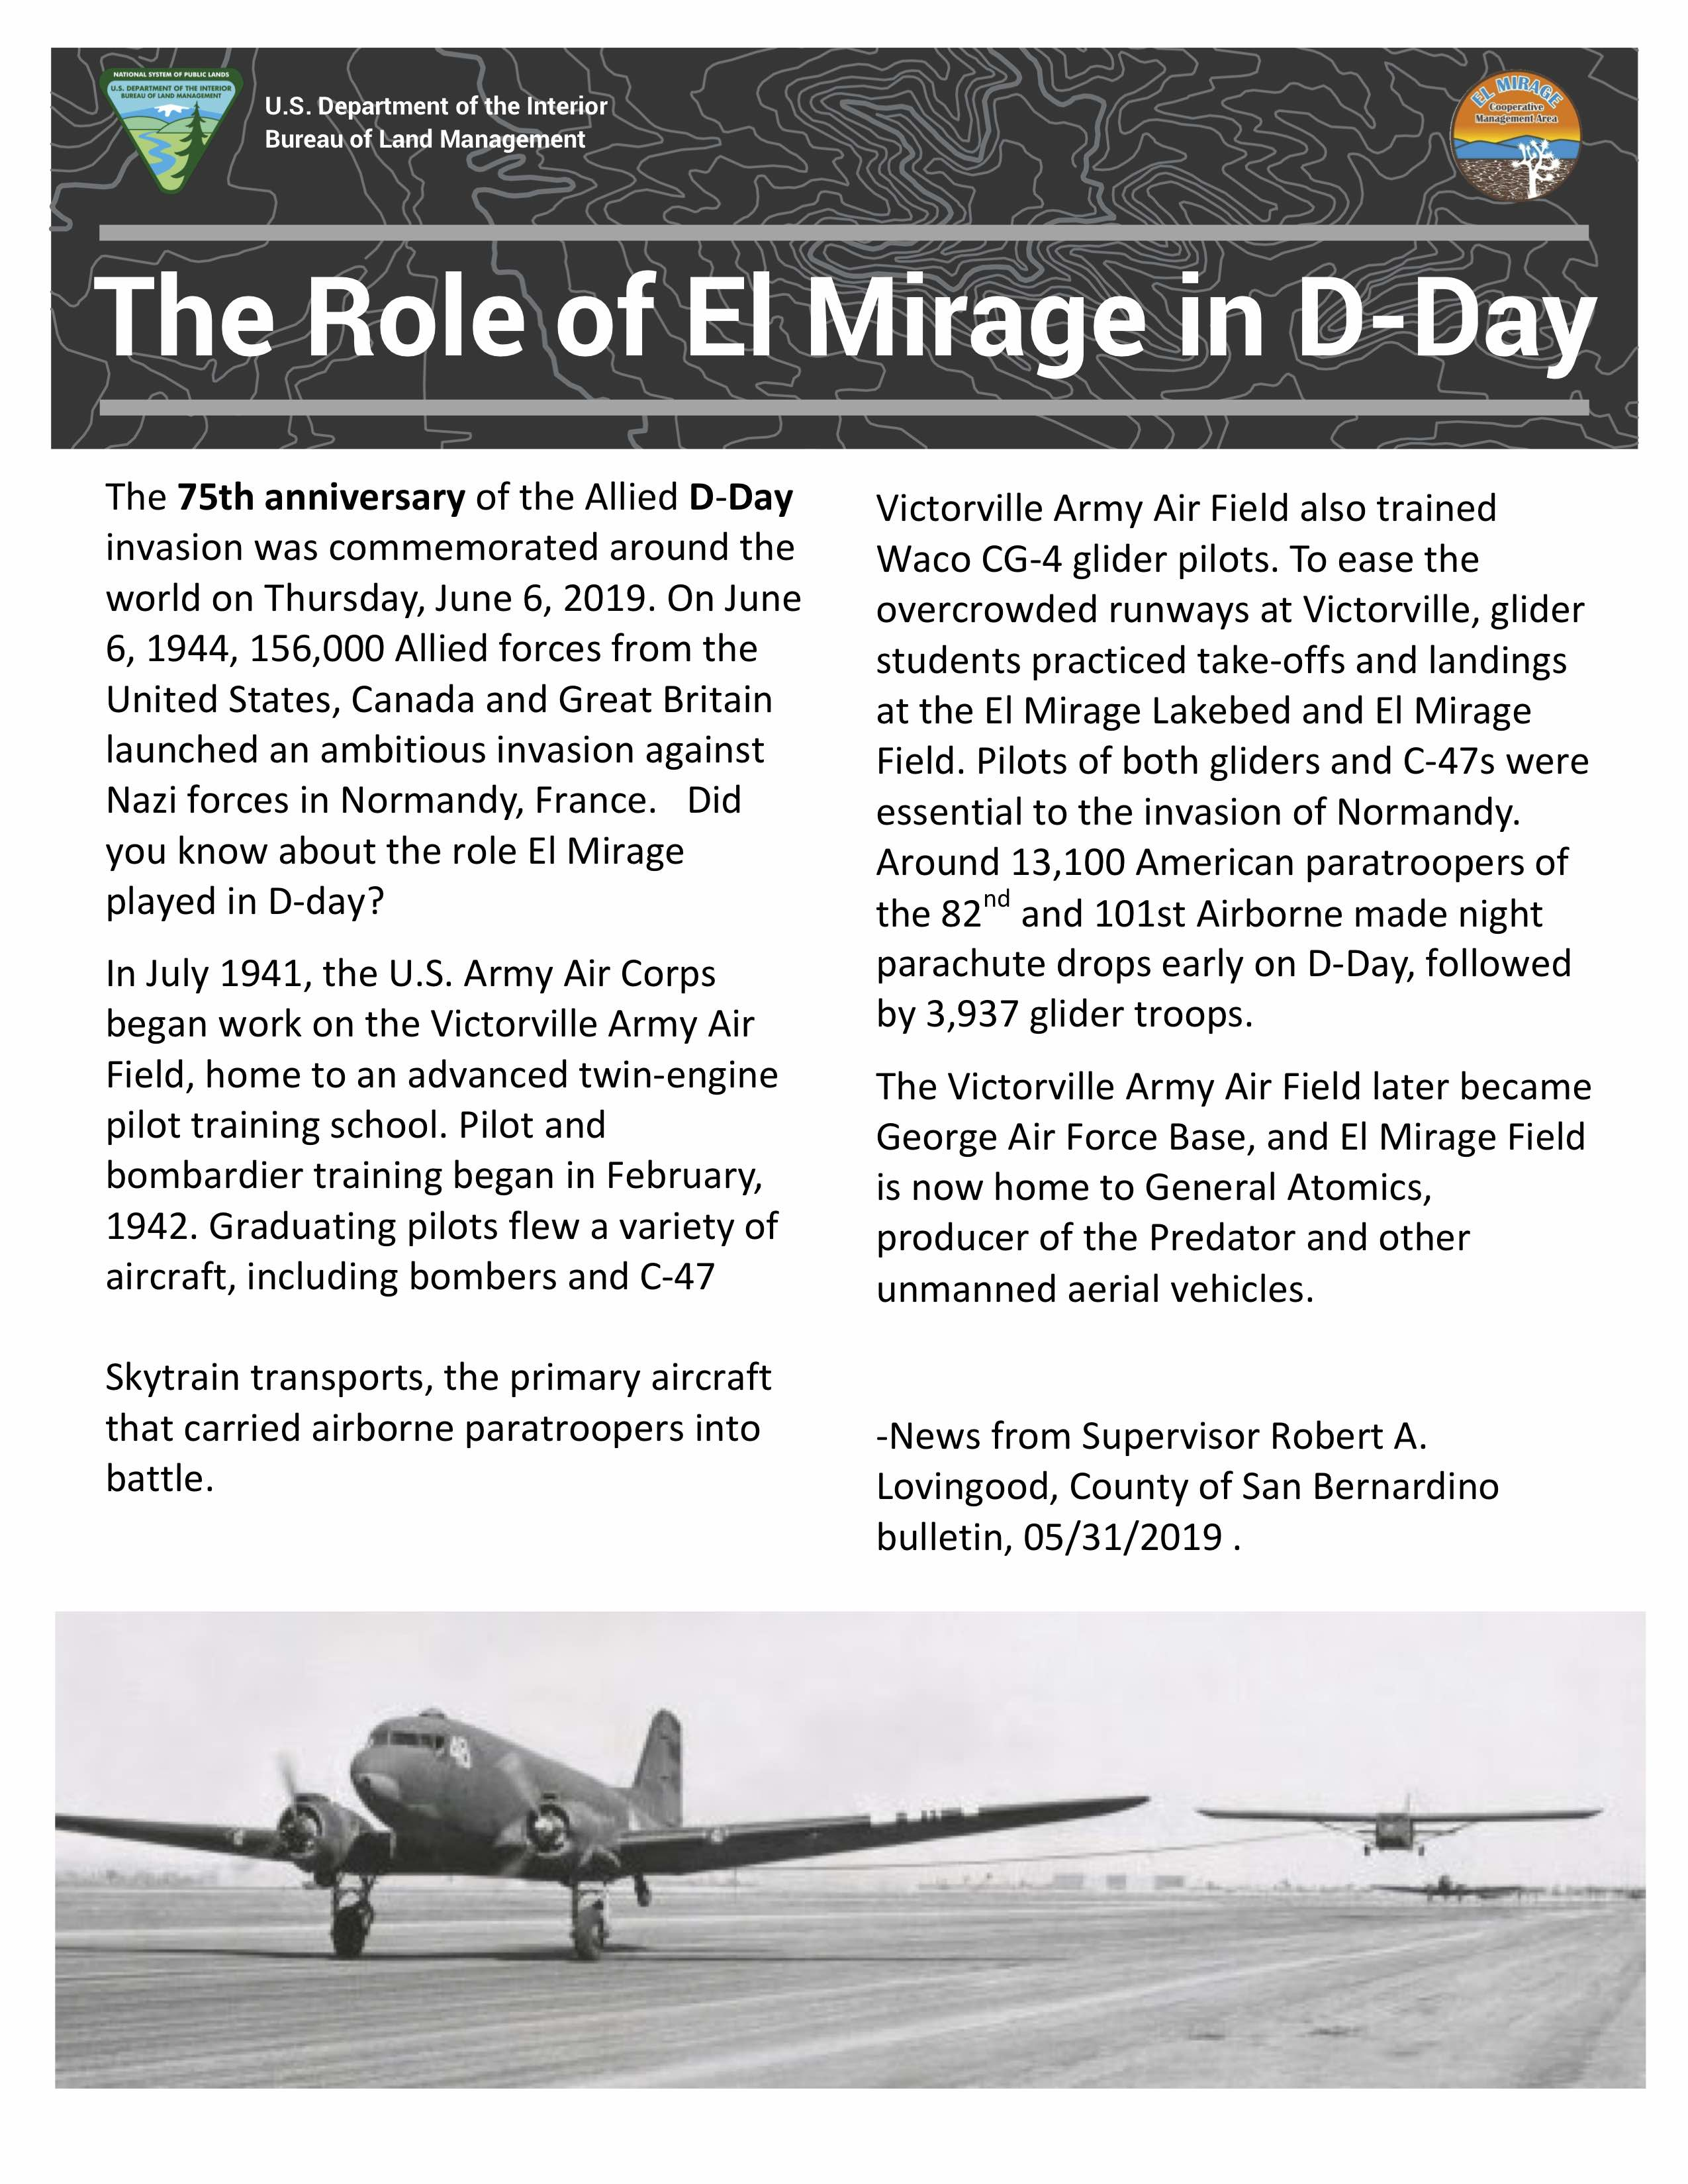 The Role of El Mirage in D-Day. Airplanes from 1940s